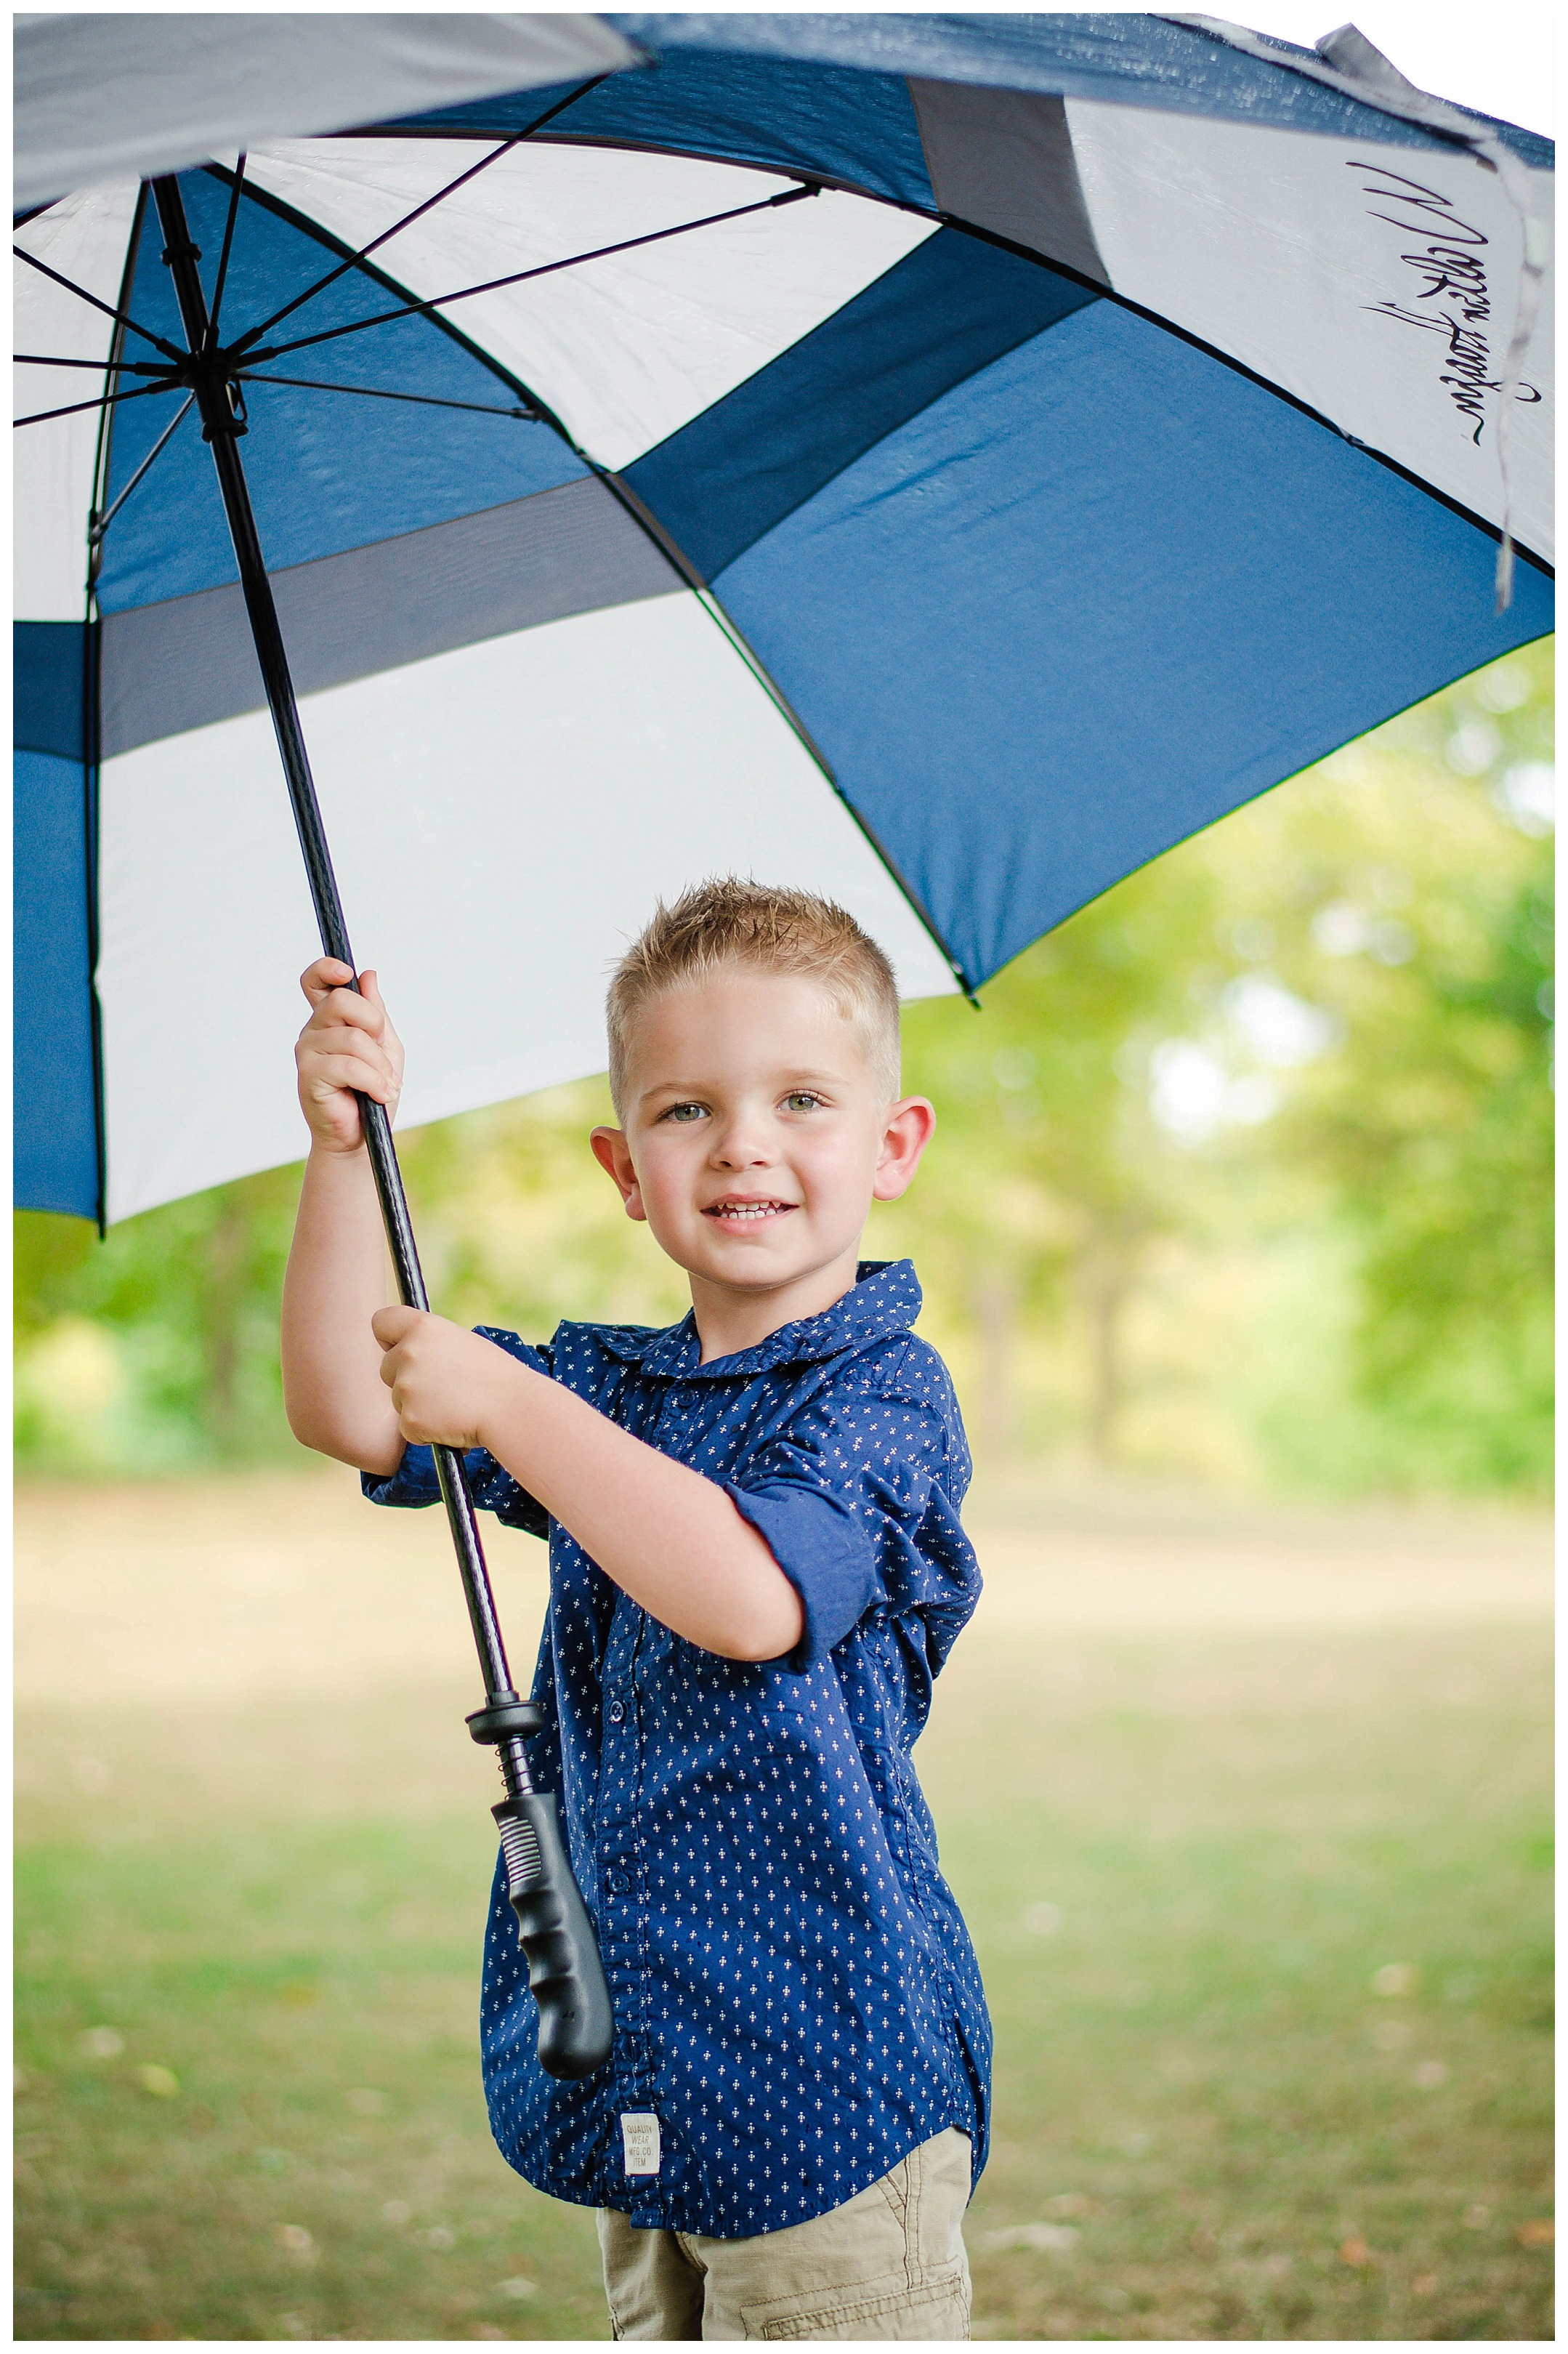 And if it starts to rain during your session? Take mama's big umbrella & just be cute! :)